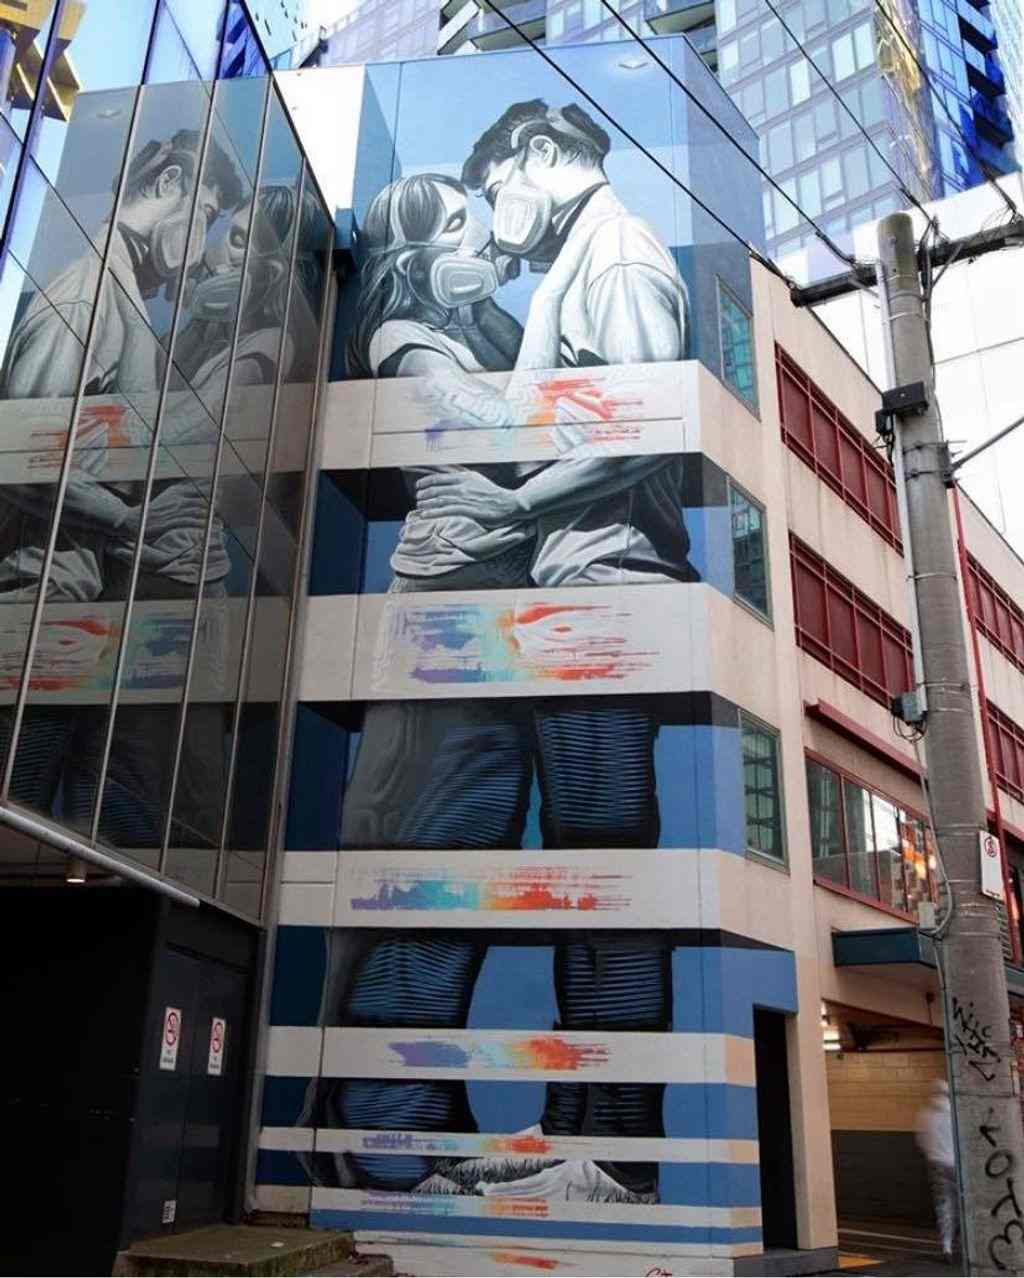 A mural of two people embracing wearing masks